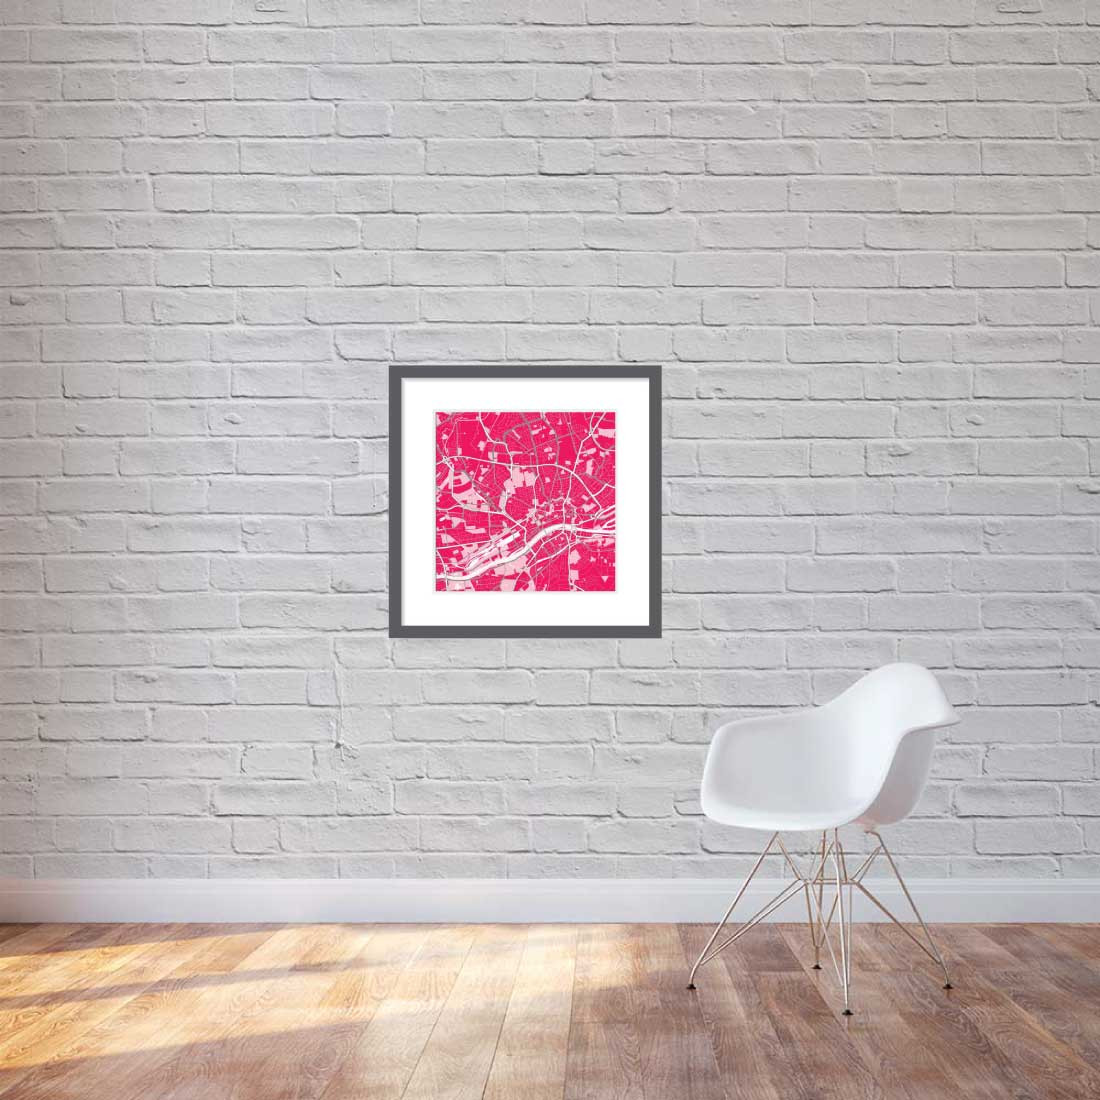 Matt print 60cmx60cm Frankfurt Strawberry Milk